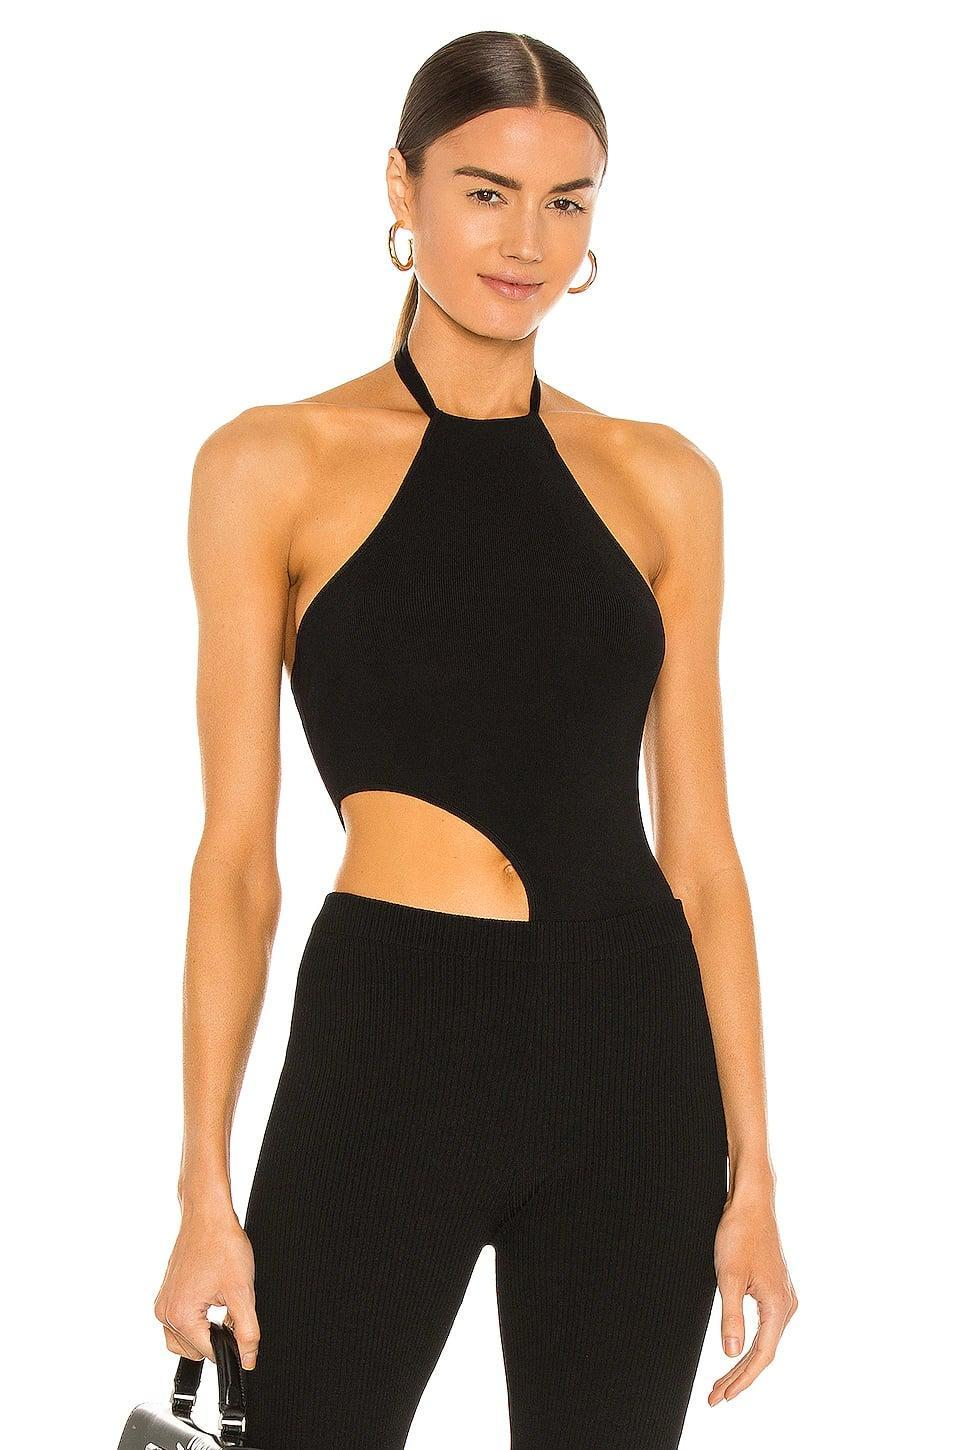 <p>A bodysuit is a night out essential. This <span>Aya Muse Jade Cutout Bodysuit</span> ($201, originally $244) has cool cutouts, and looks great with jeans, black pants, or even a miniskirt.</p>